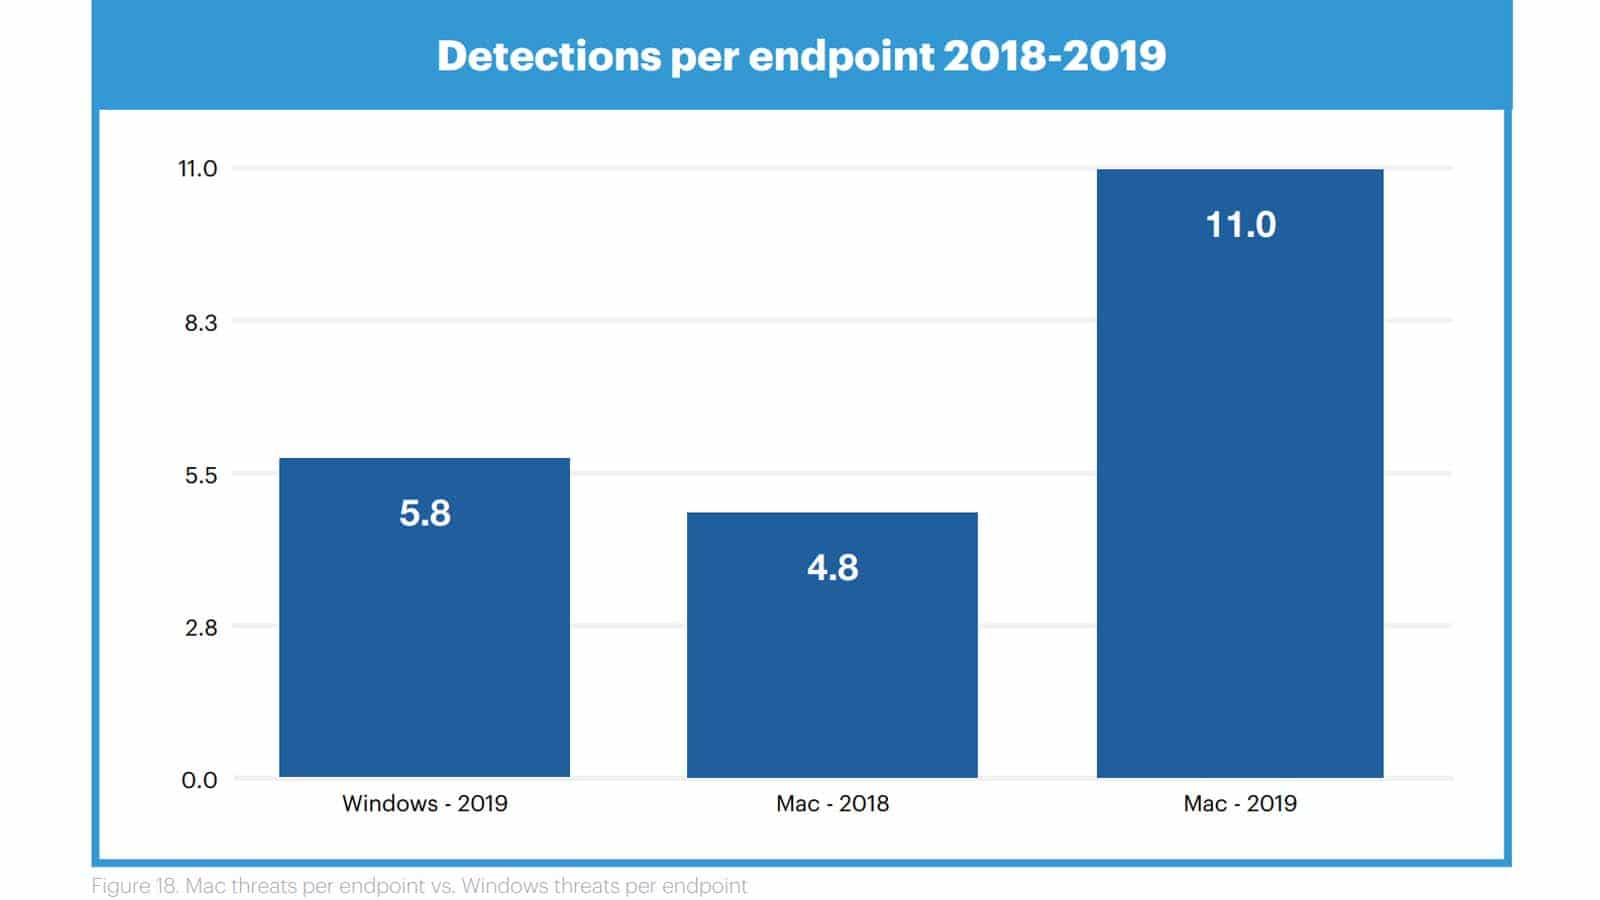 mac virus detections on the rise